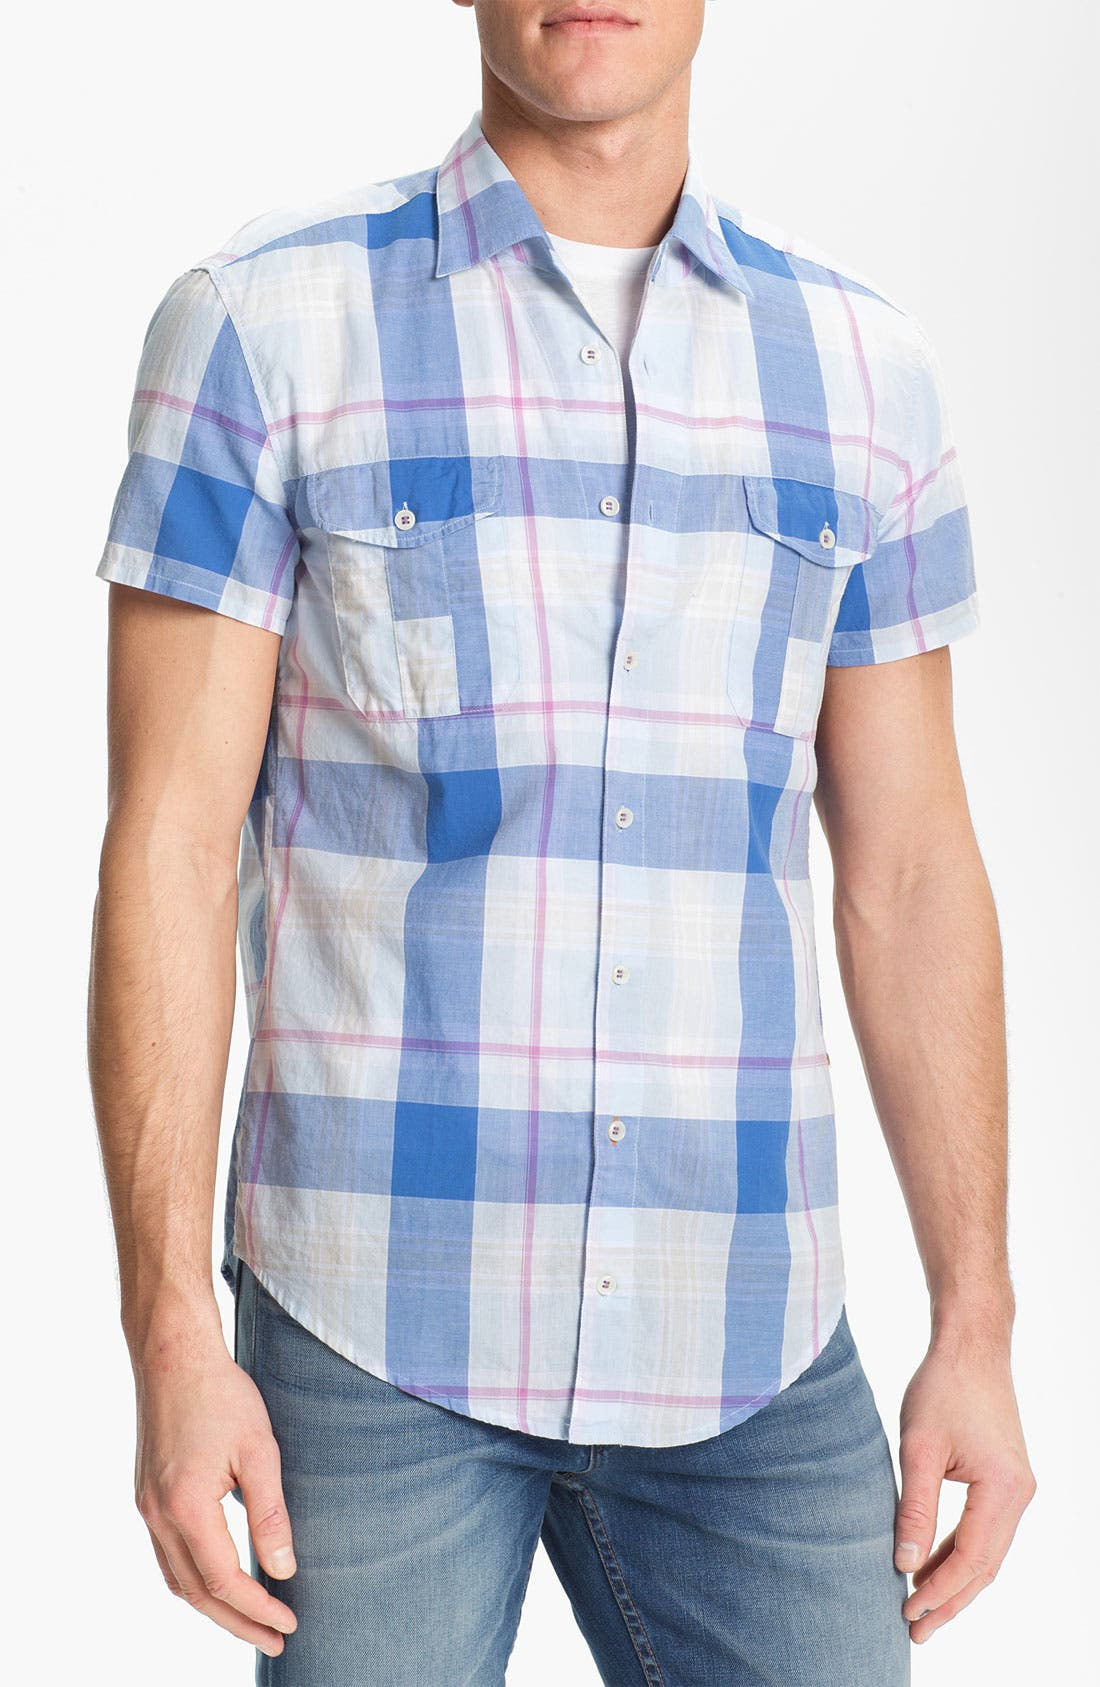 Main Image - BOSS Orange Plaid Woven Shirt